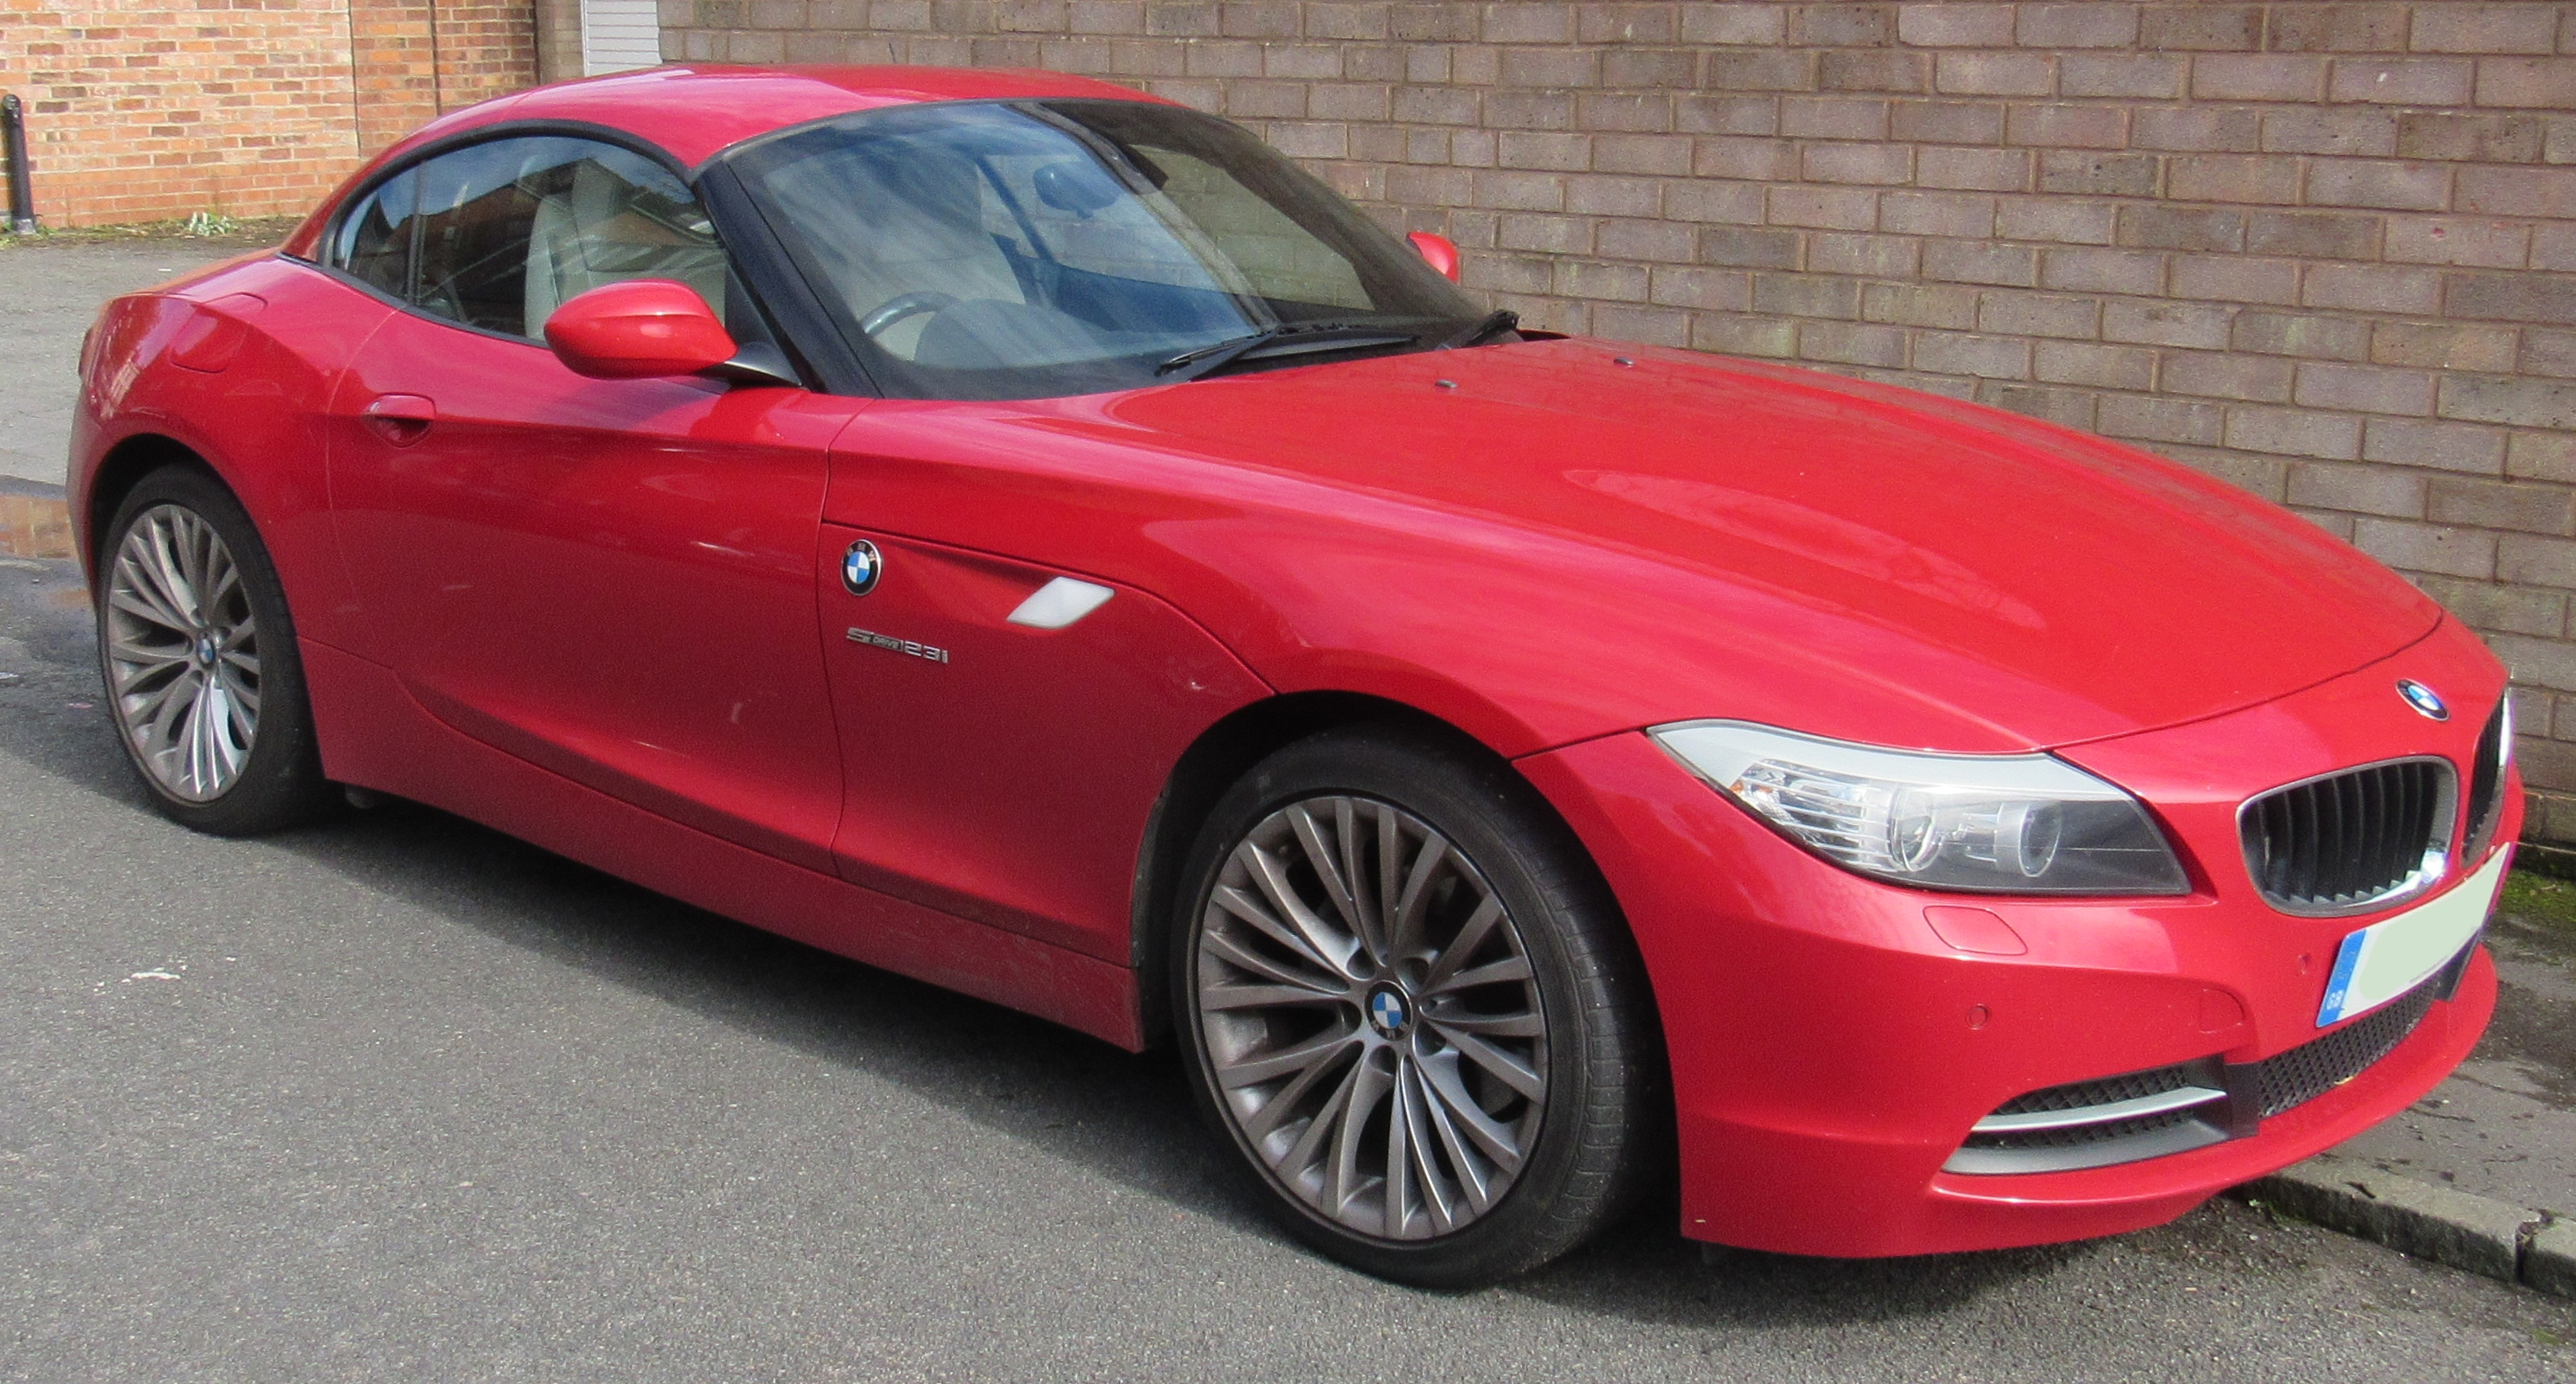 jahre at just fbmwsh manual a roadster bmw sold m used serviced